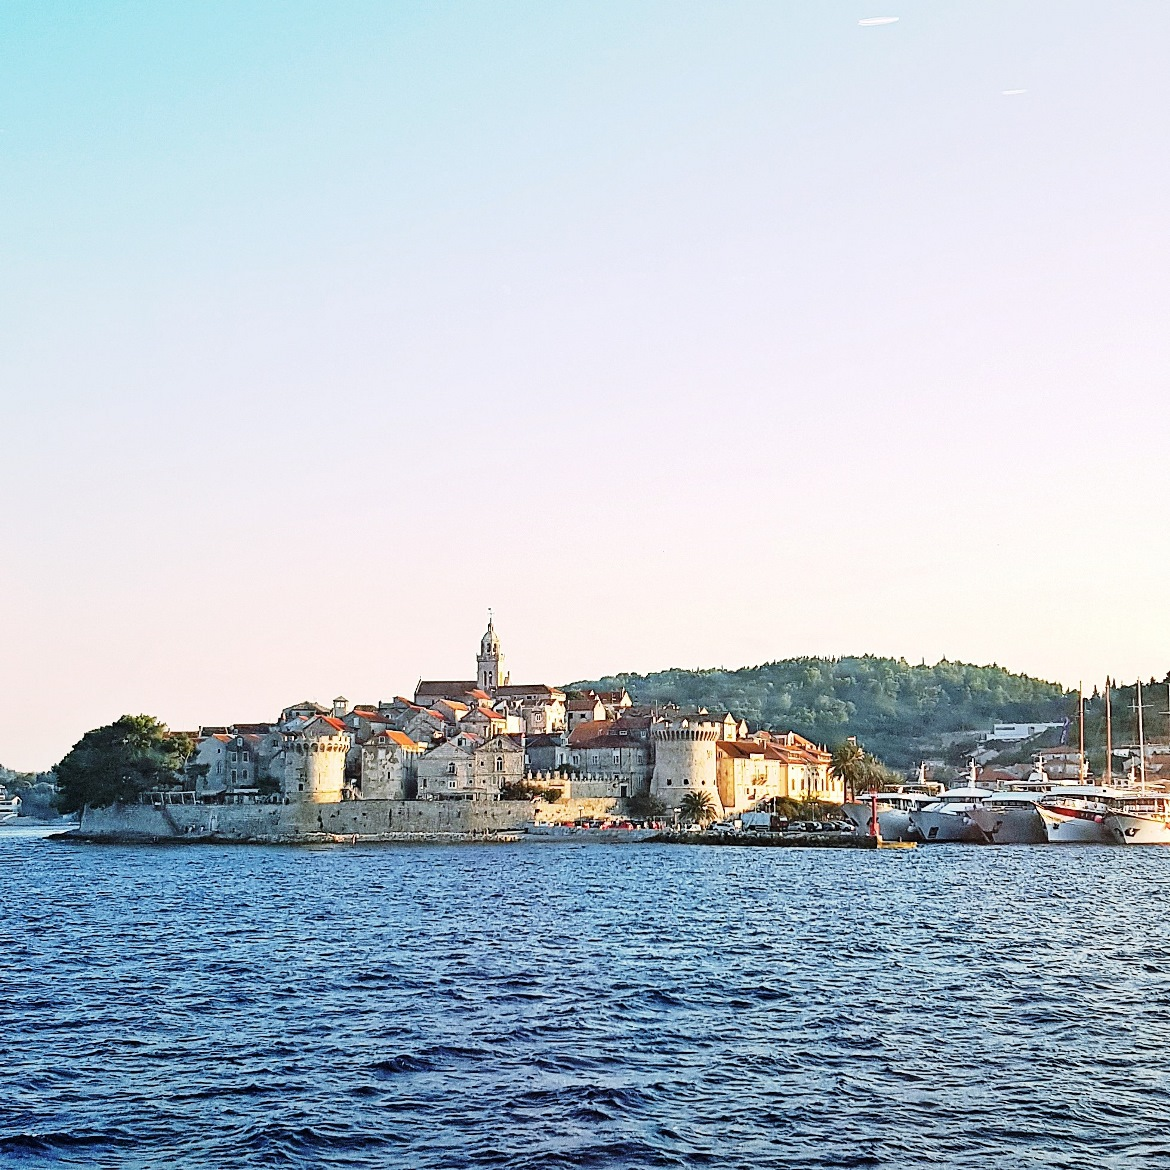 Korcula on the Dubrovnik-Split ferry - Croatia in Photographs by BeckyBecky Blogs